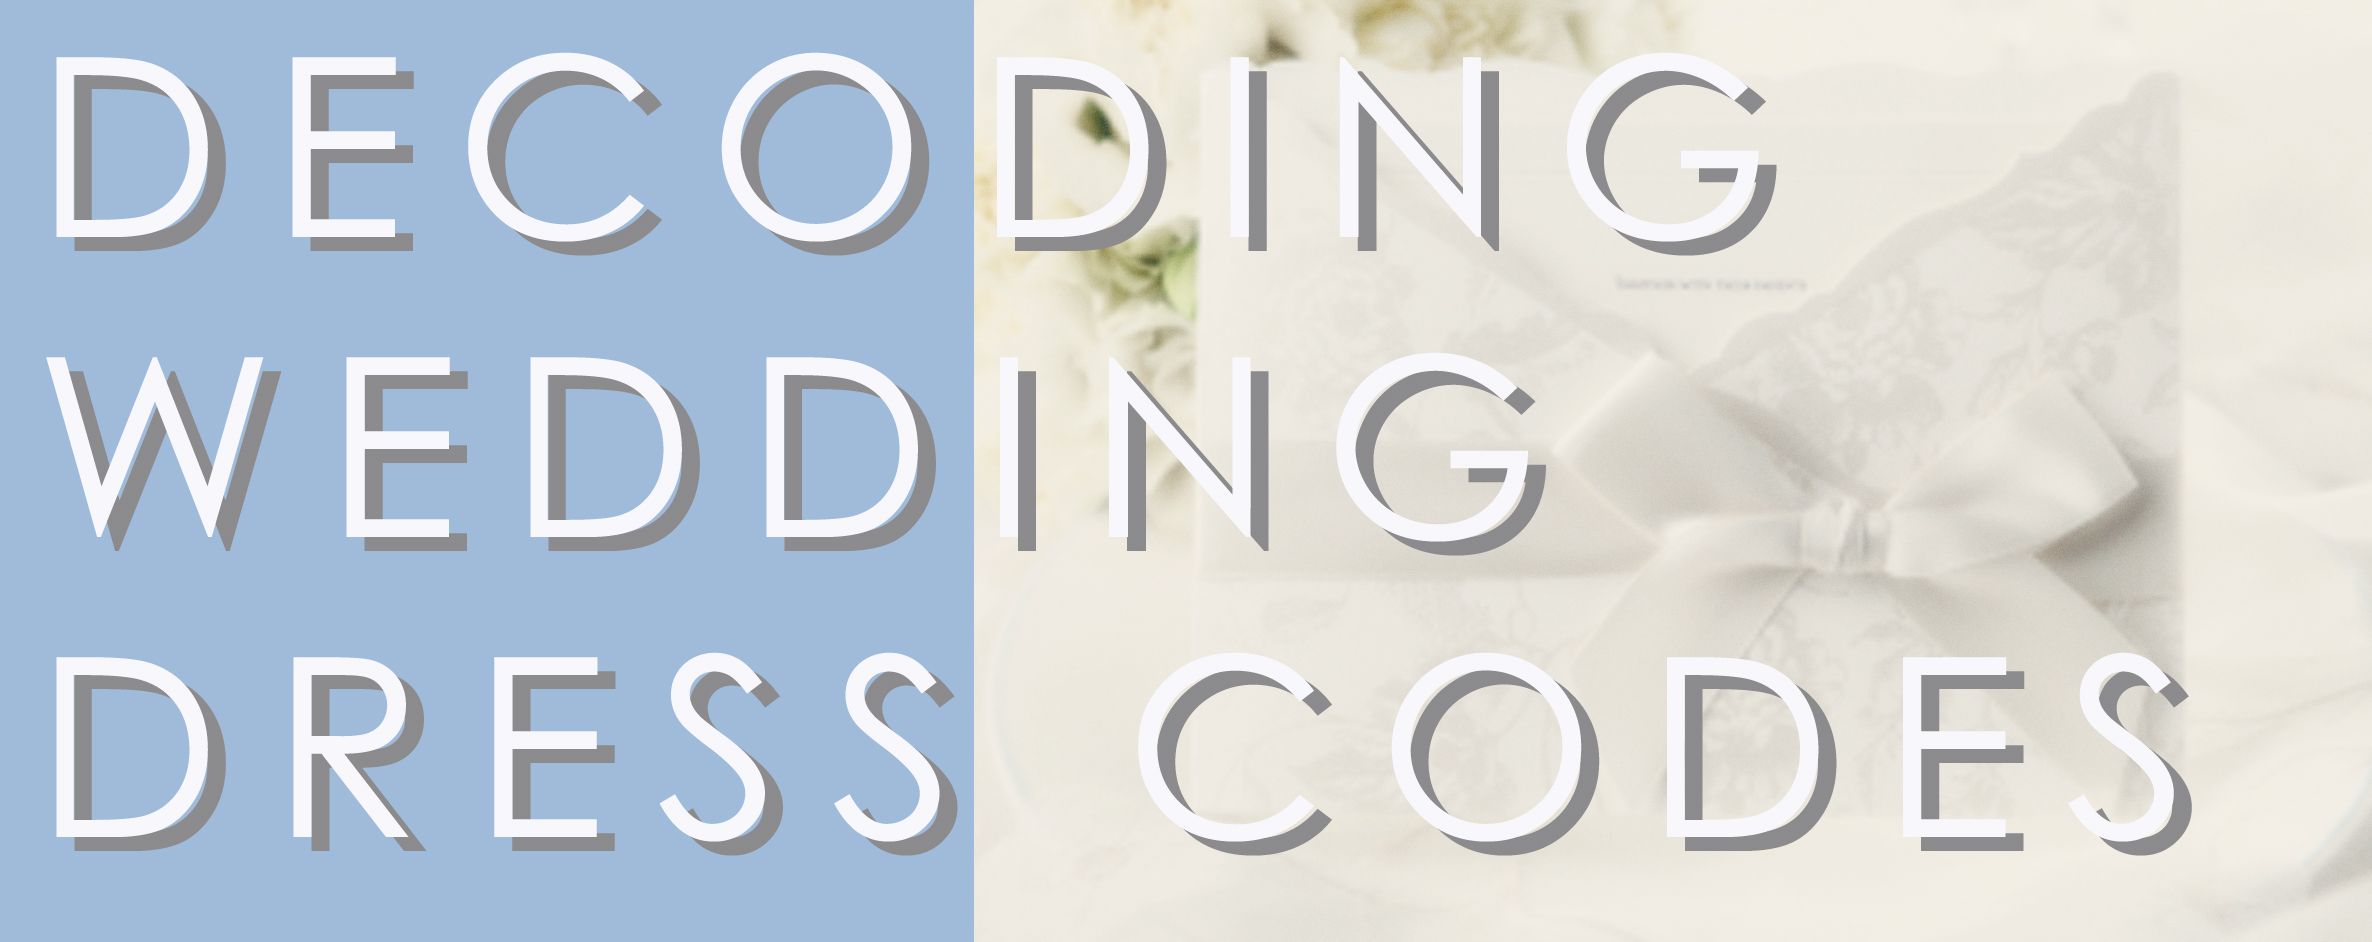 Decoding Wedding Dress Codes